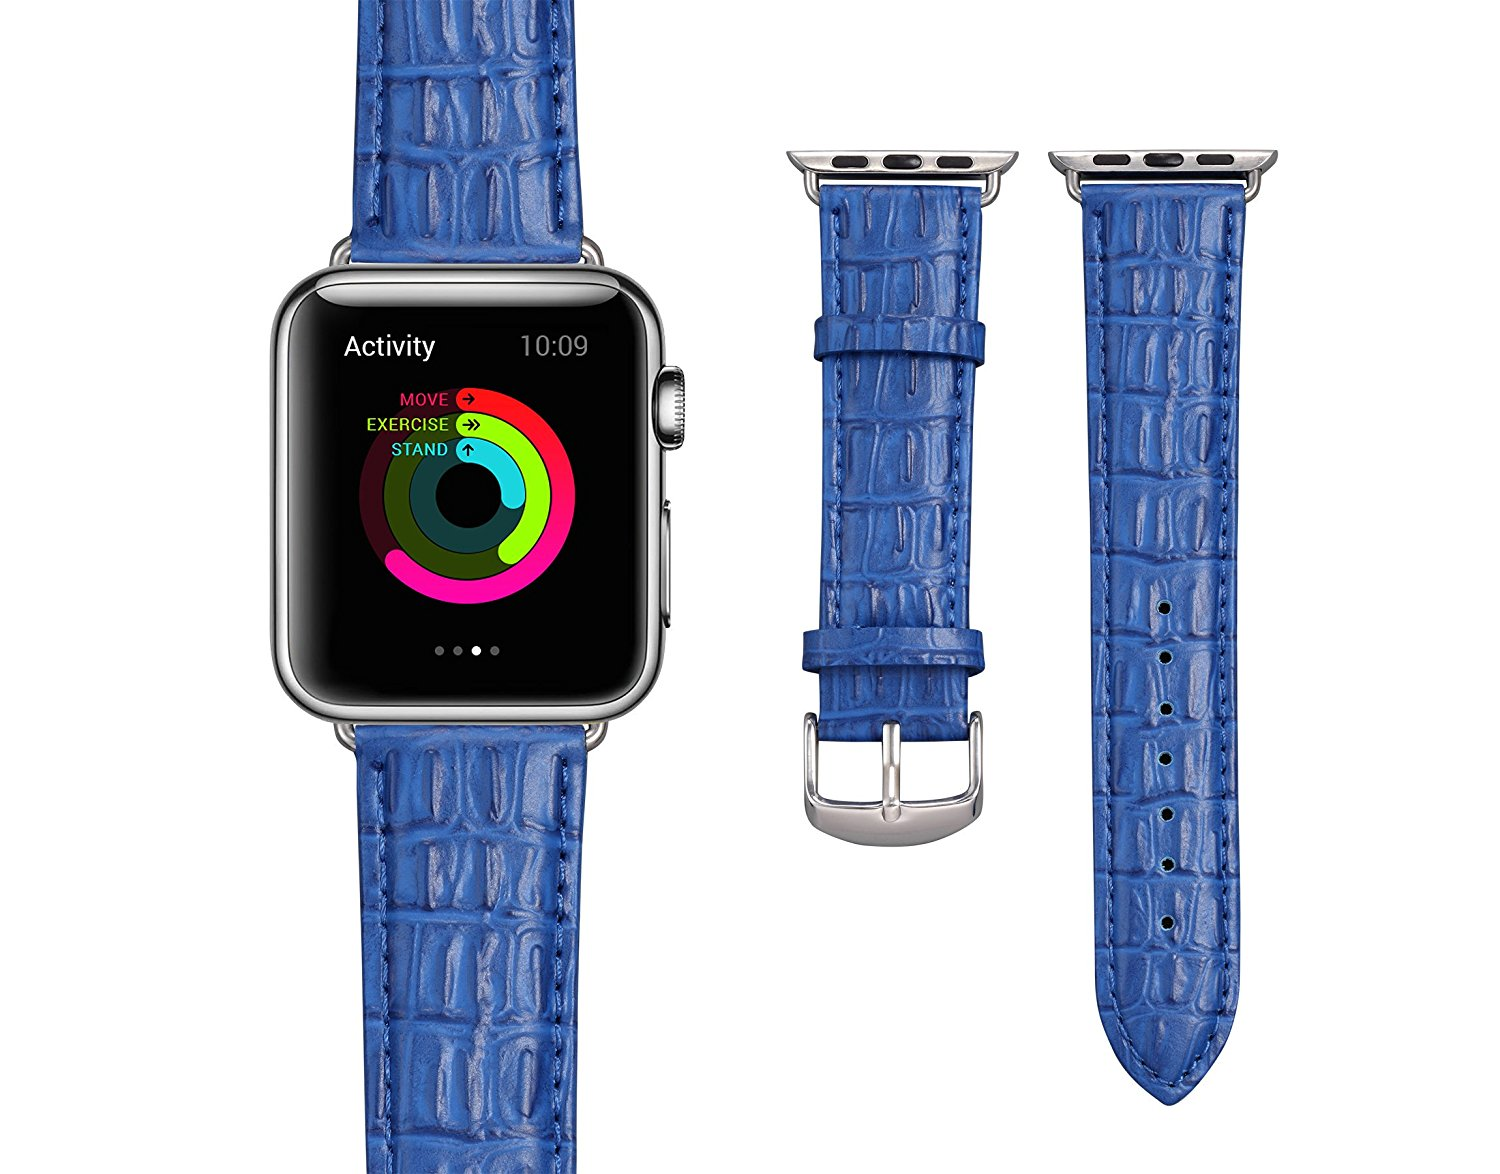 Apple Watch Strap 38mm, BASN Genuine Leather Band with Stainless Steel Adapter Replacement Wrist Band Watchband for Apple Watch 38mm All Series (Blue 38mm)